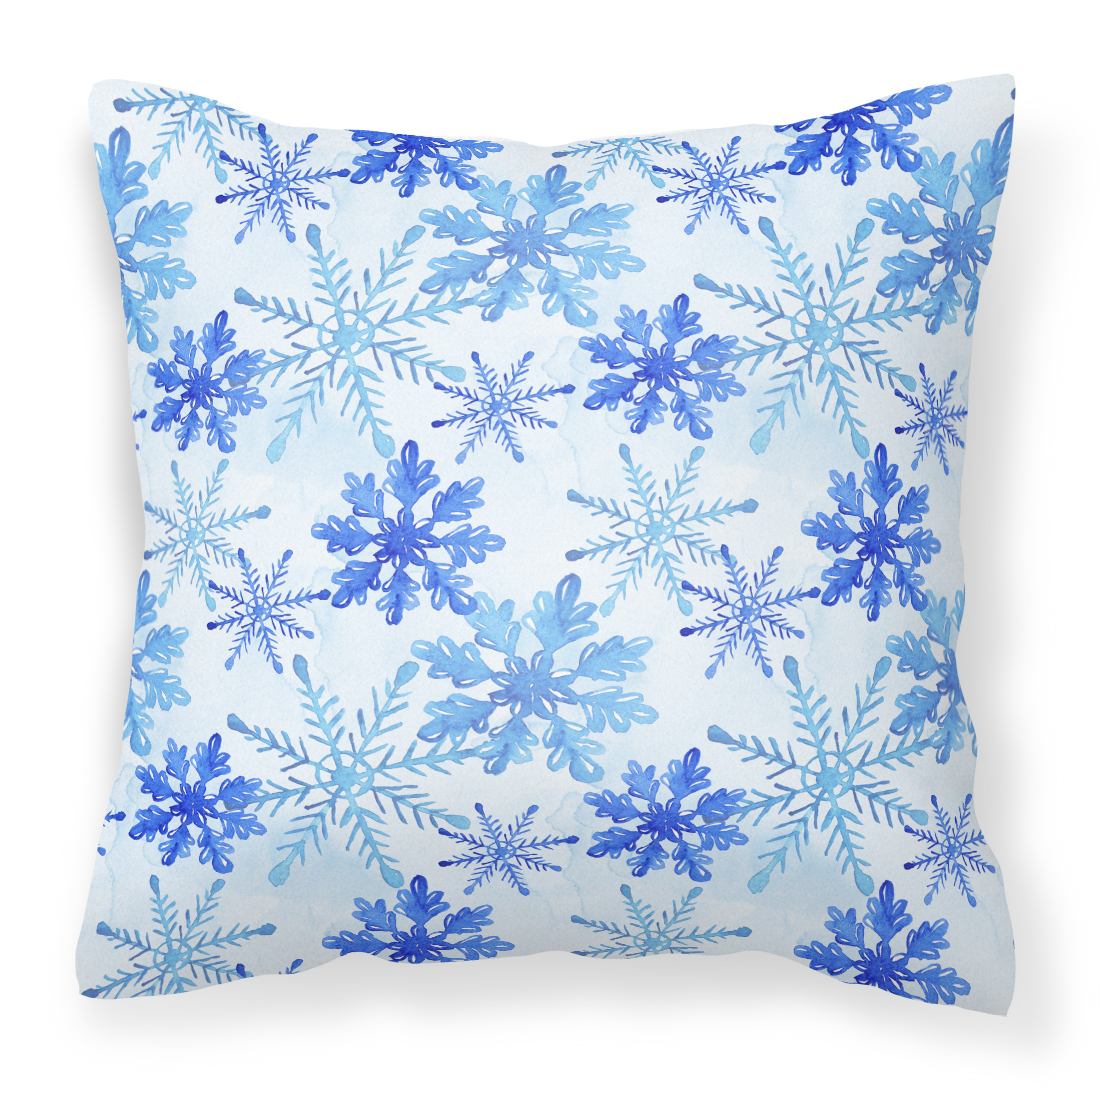 Blue Snowflakes Watercolor Fabric Decorative Pillow BB7484PW1818